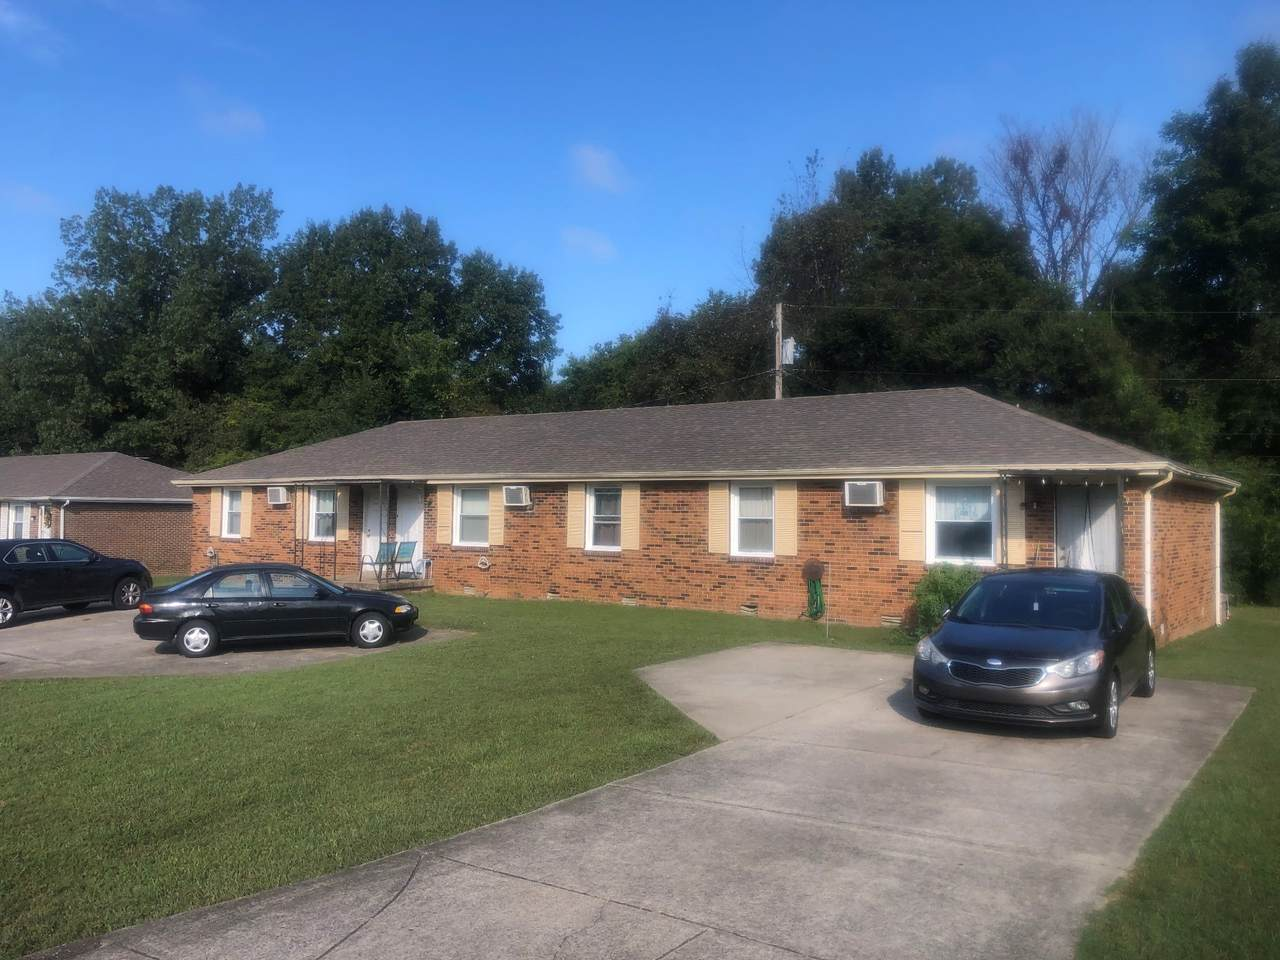 107 Tandy Dr - Photo 1